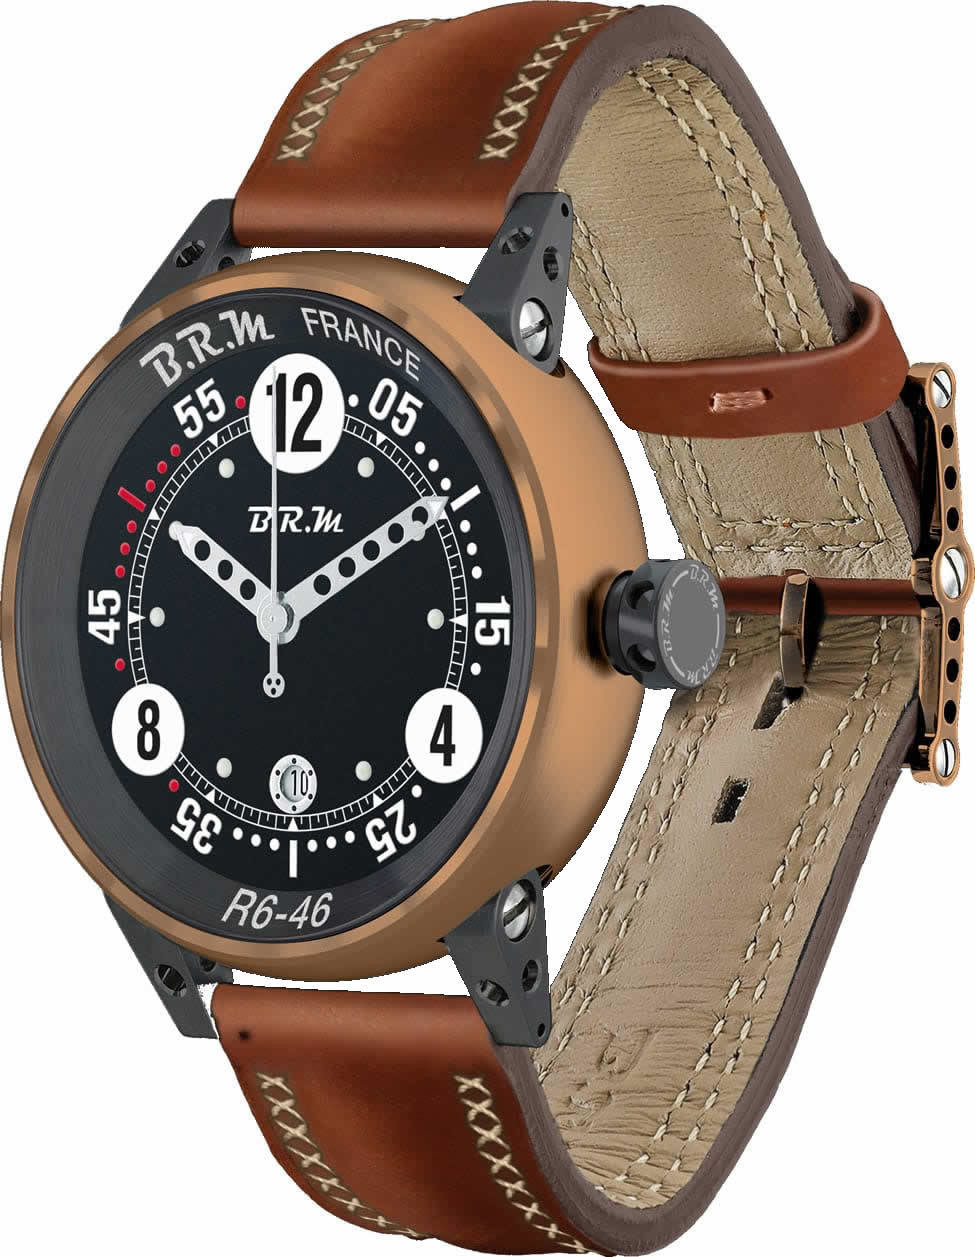 BRM BRONZE Replica Watch BRM R6-46 Bronze BRM-R6-46-BRONZE